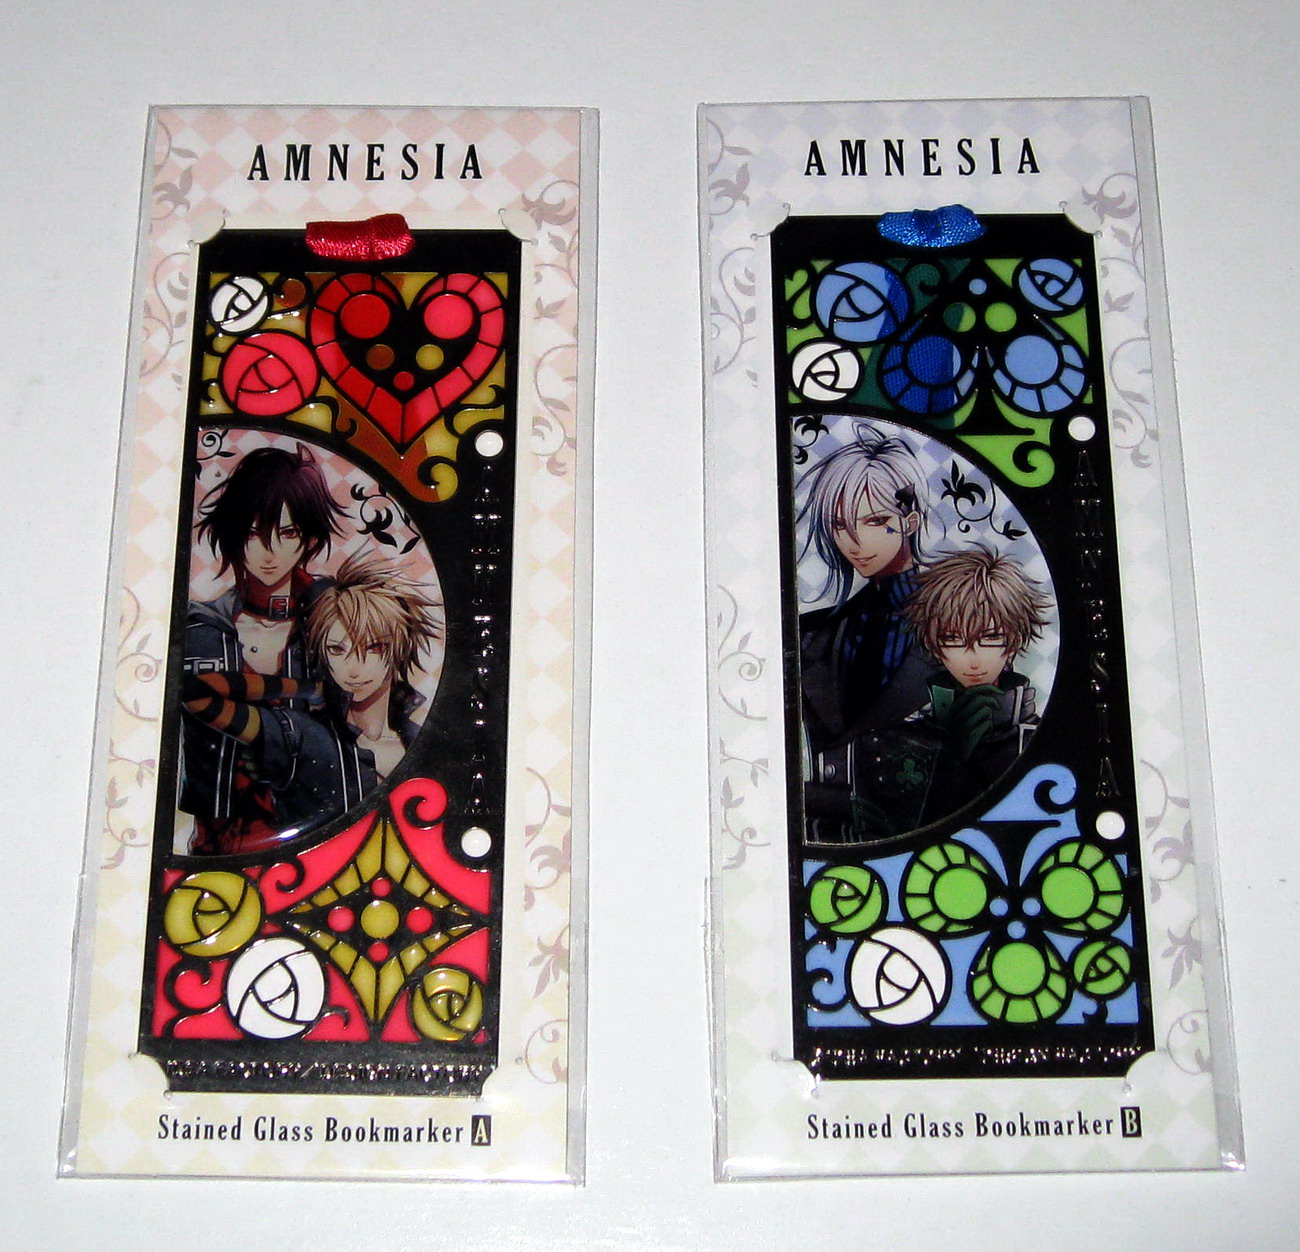 Amnesia - stained glass bookmarkers